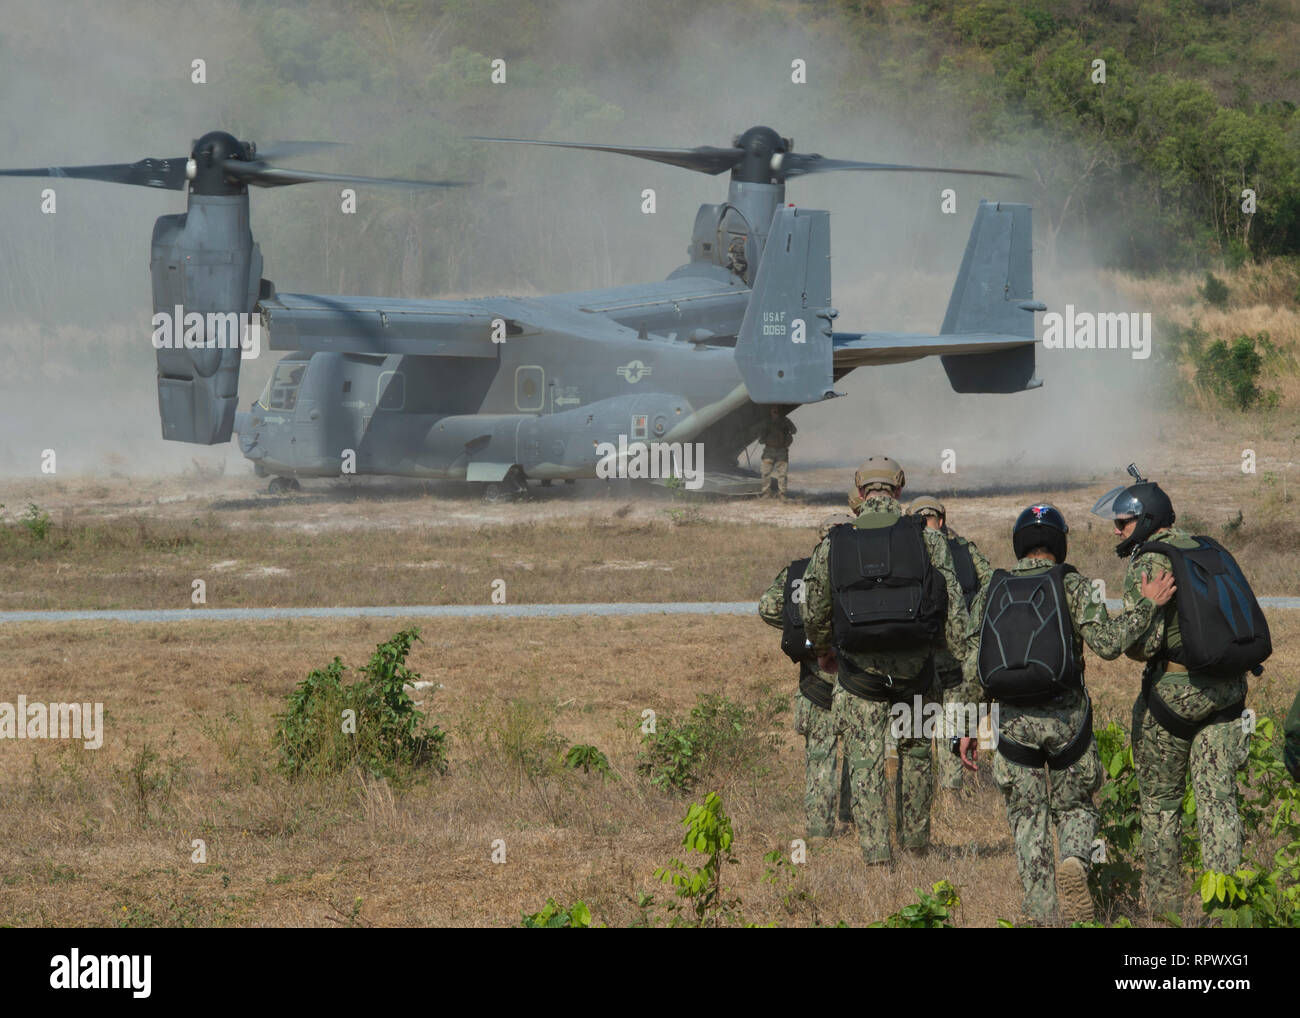 SATTAHIP, Thailand, (Feb. 21, 2019) Sailors assigned to Explosive Ordnance Disposal Mobile Unit (EODMU) 5 and Sailors from the Royal Thai Navy, participate in a joint military free-fall training during Exercise Cobra Gold 2019. Cobra Gold is a multinational exercise co-sponsored by Thailand and the United States that is designed to advance regional security and effective response to crisis contingencies through a robust multinational force to address common goals and security commitments in the Indo-Pacific region. - Stock Image